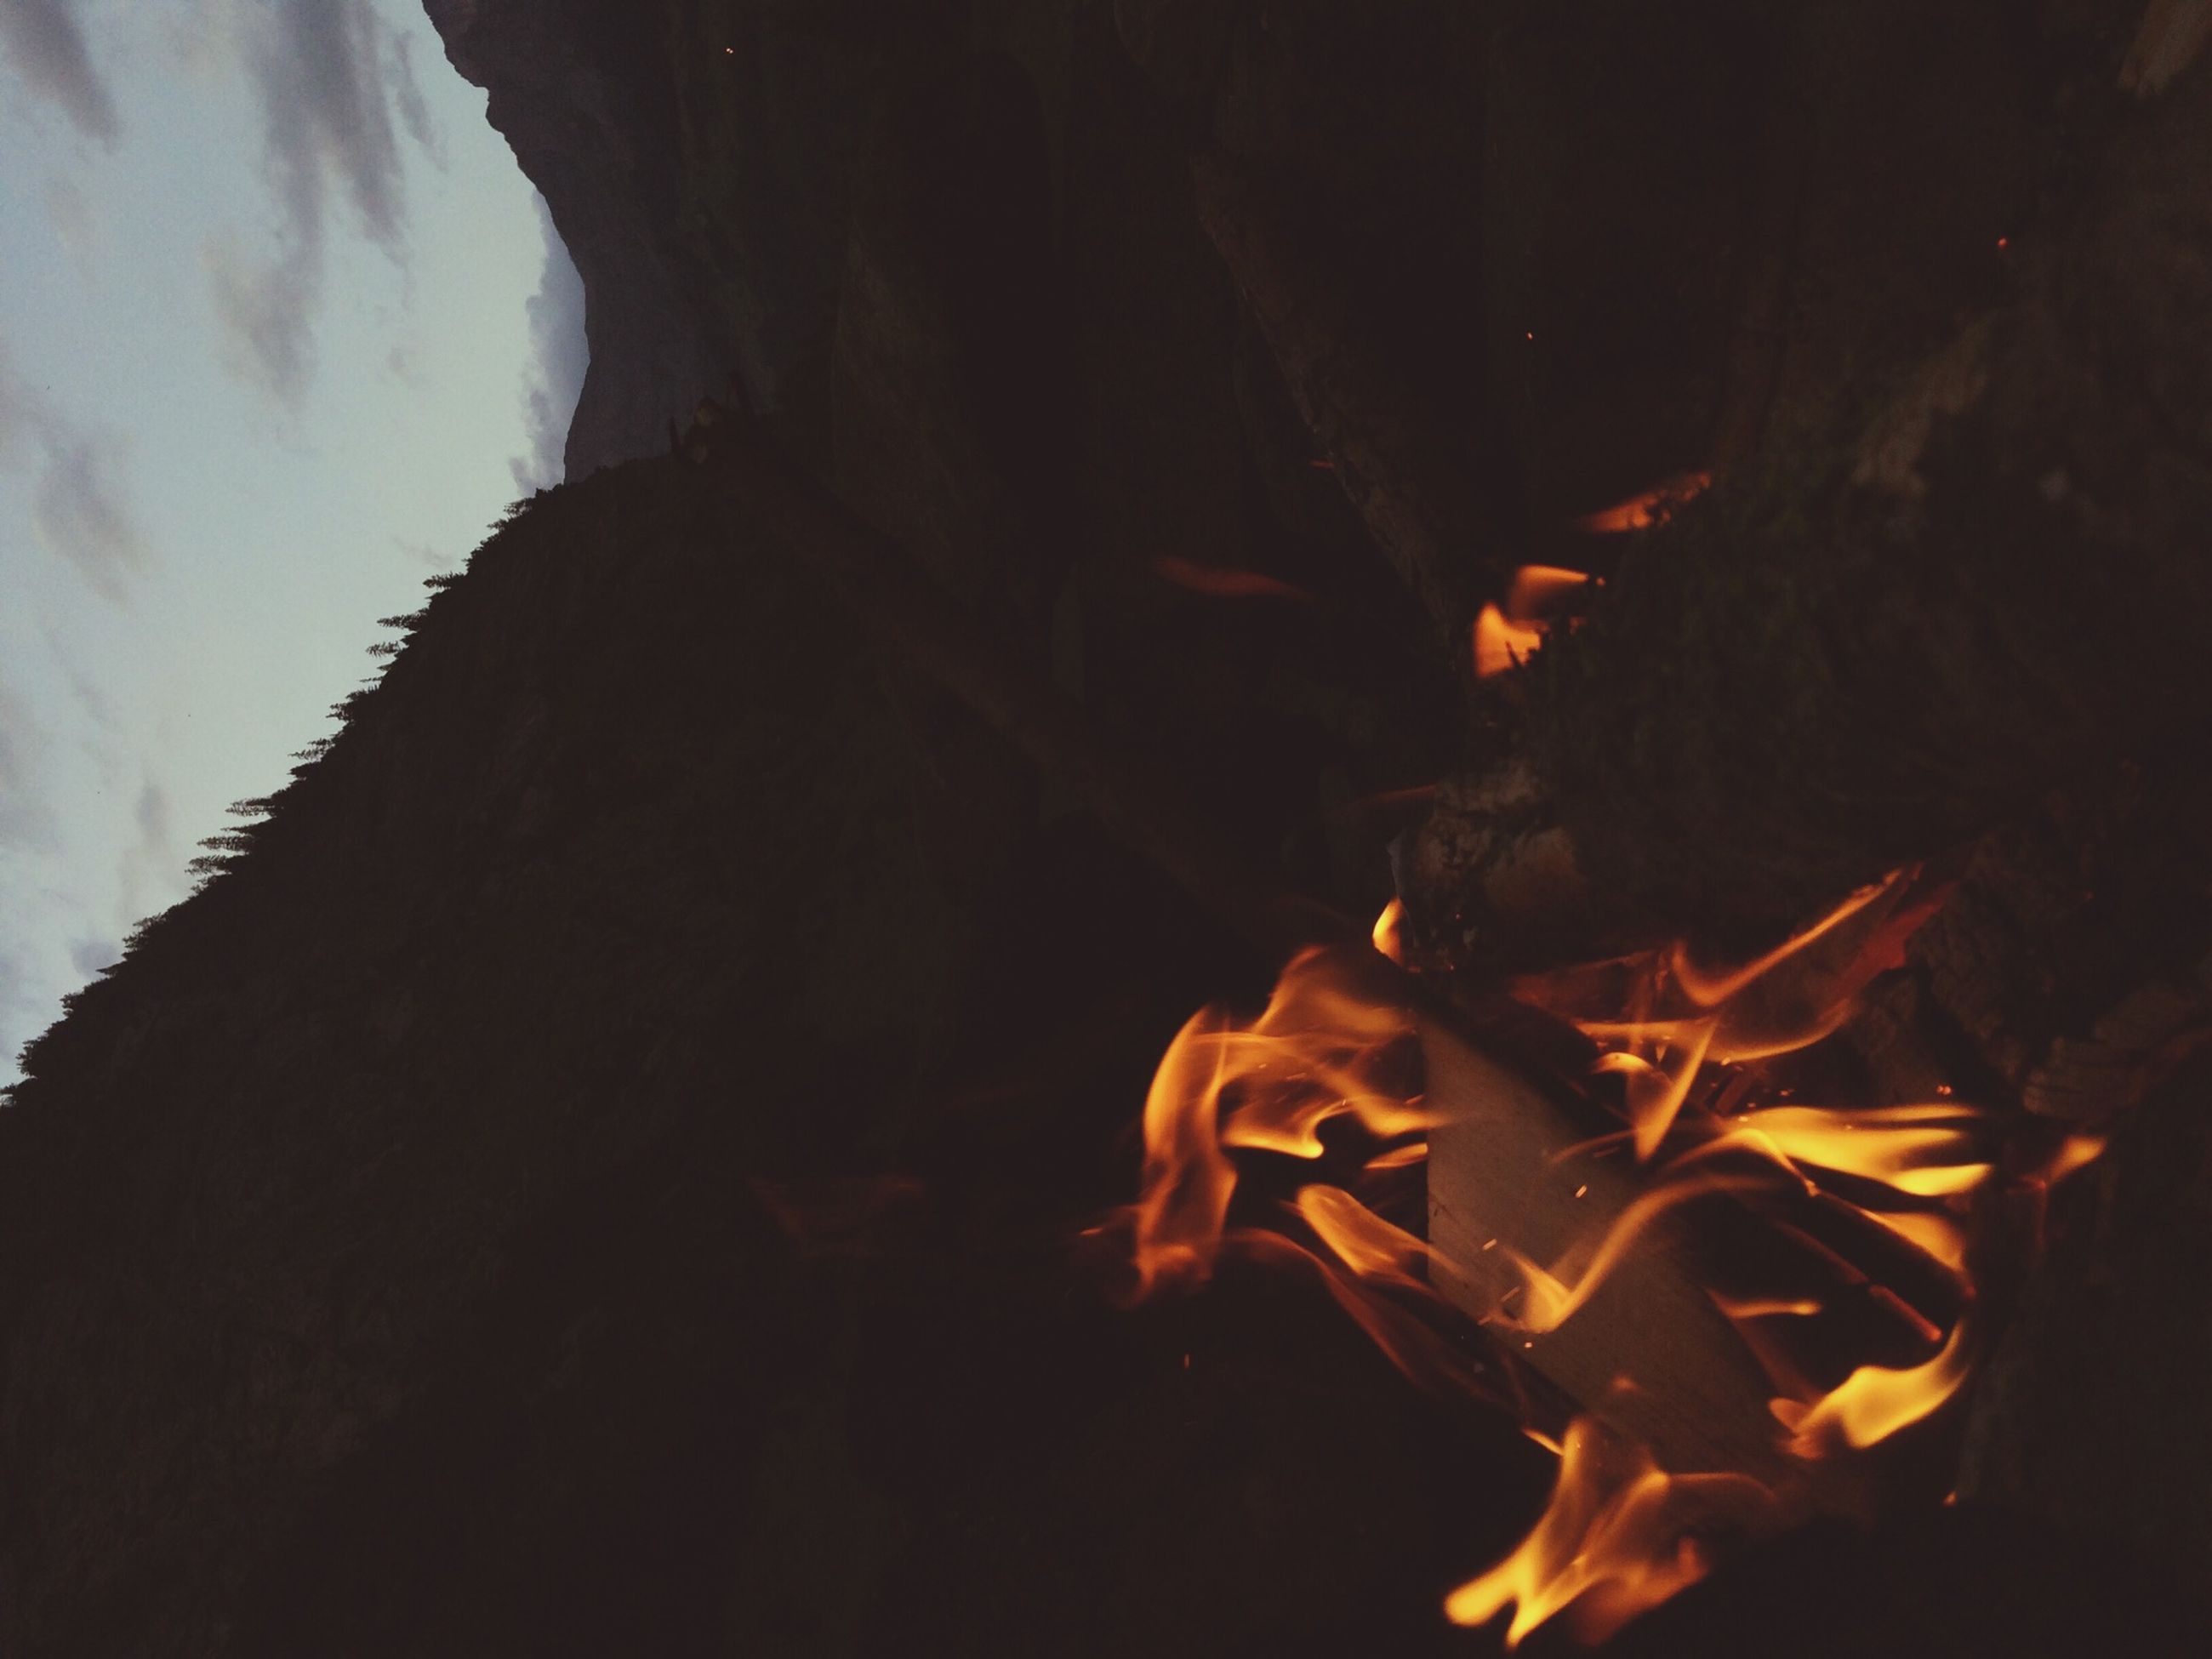 burning, flame, fire - natural phenomenon, heat - temperature, bonfire, night, fire, firewood, campfire, glowing, heat, close-up, orange color, dark, outdoors, rock - object, no people, motion, nature, light - natural phenomenon